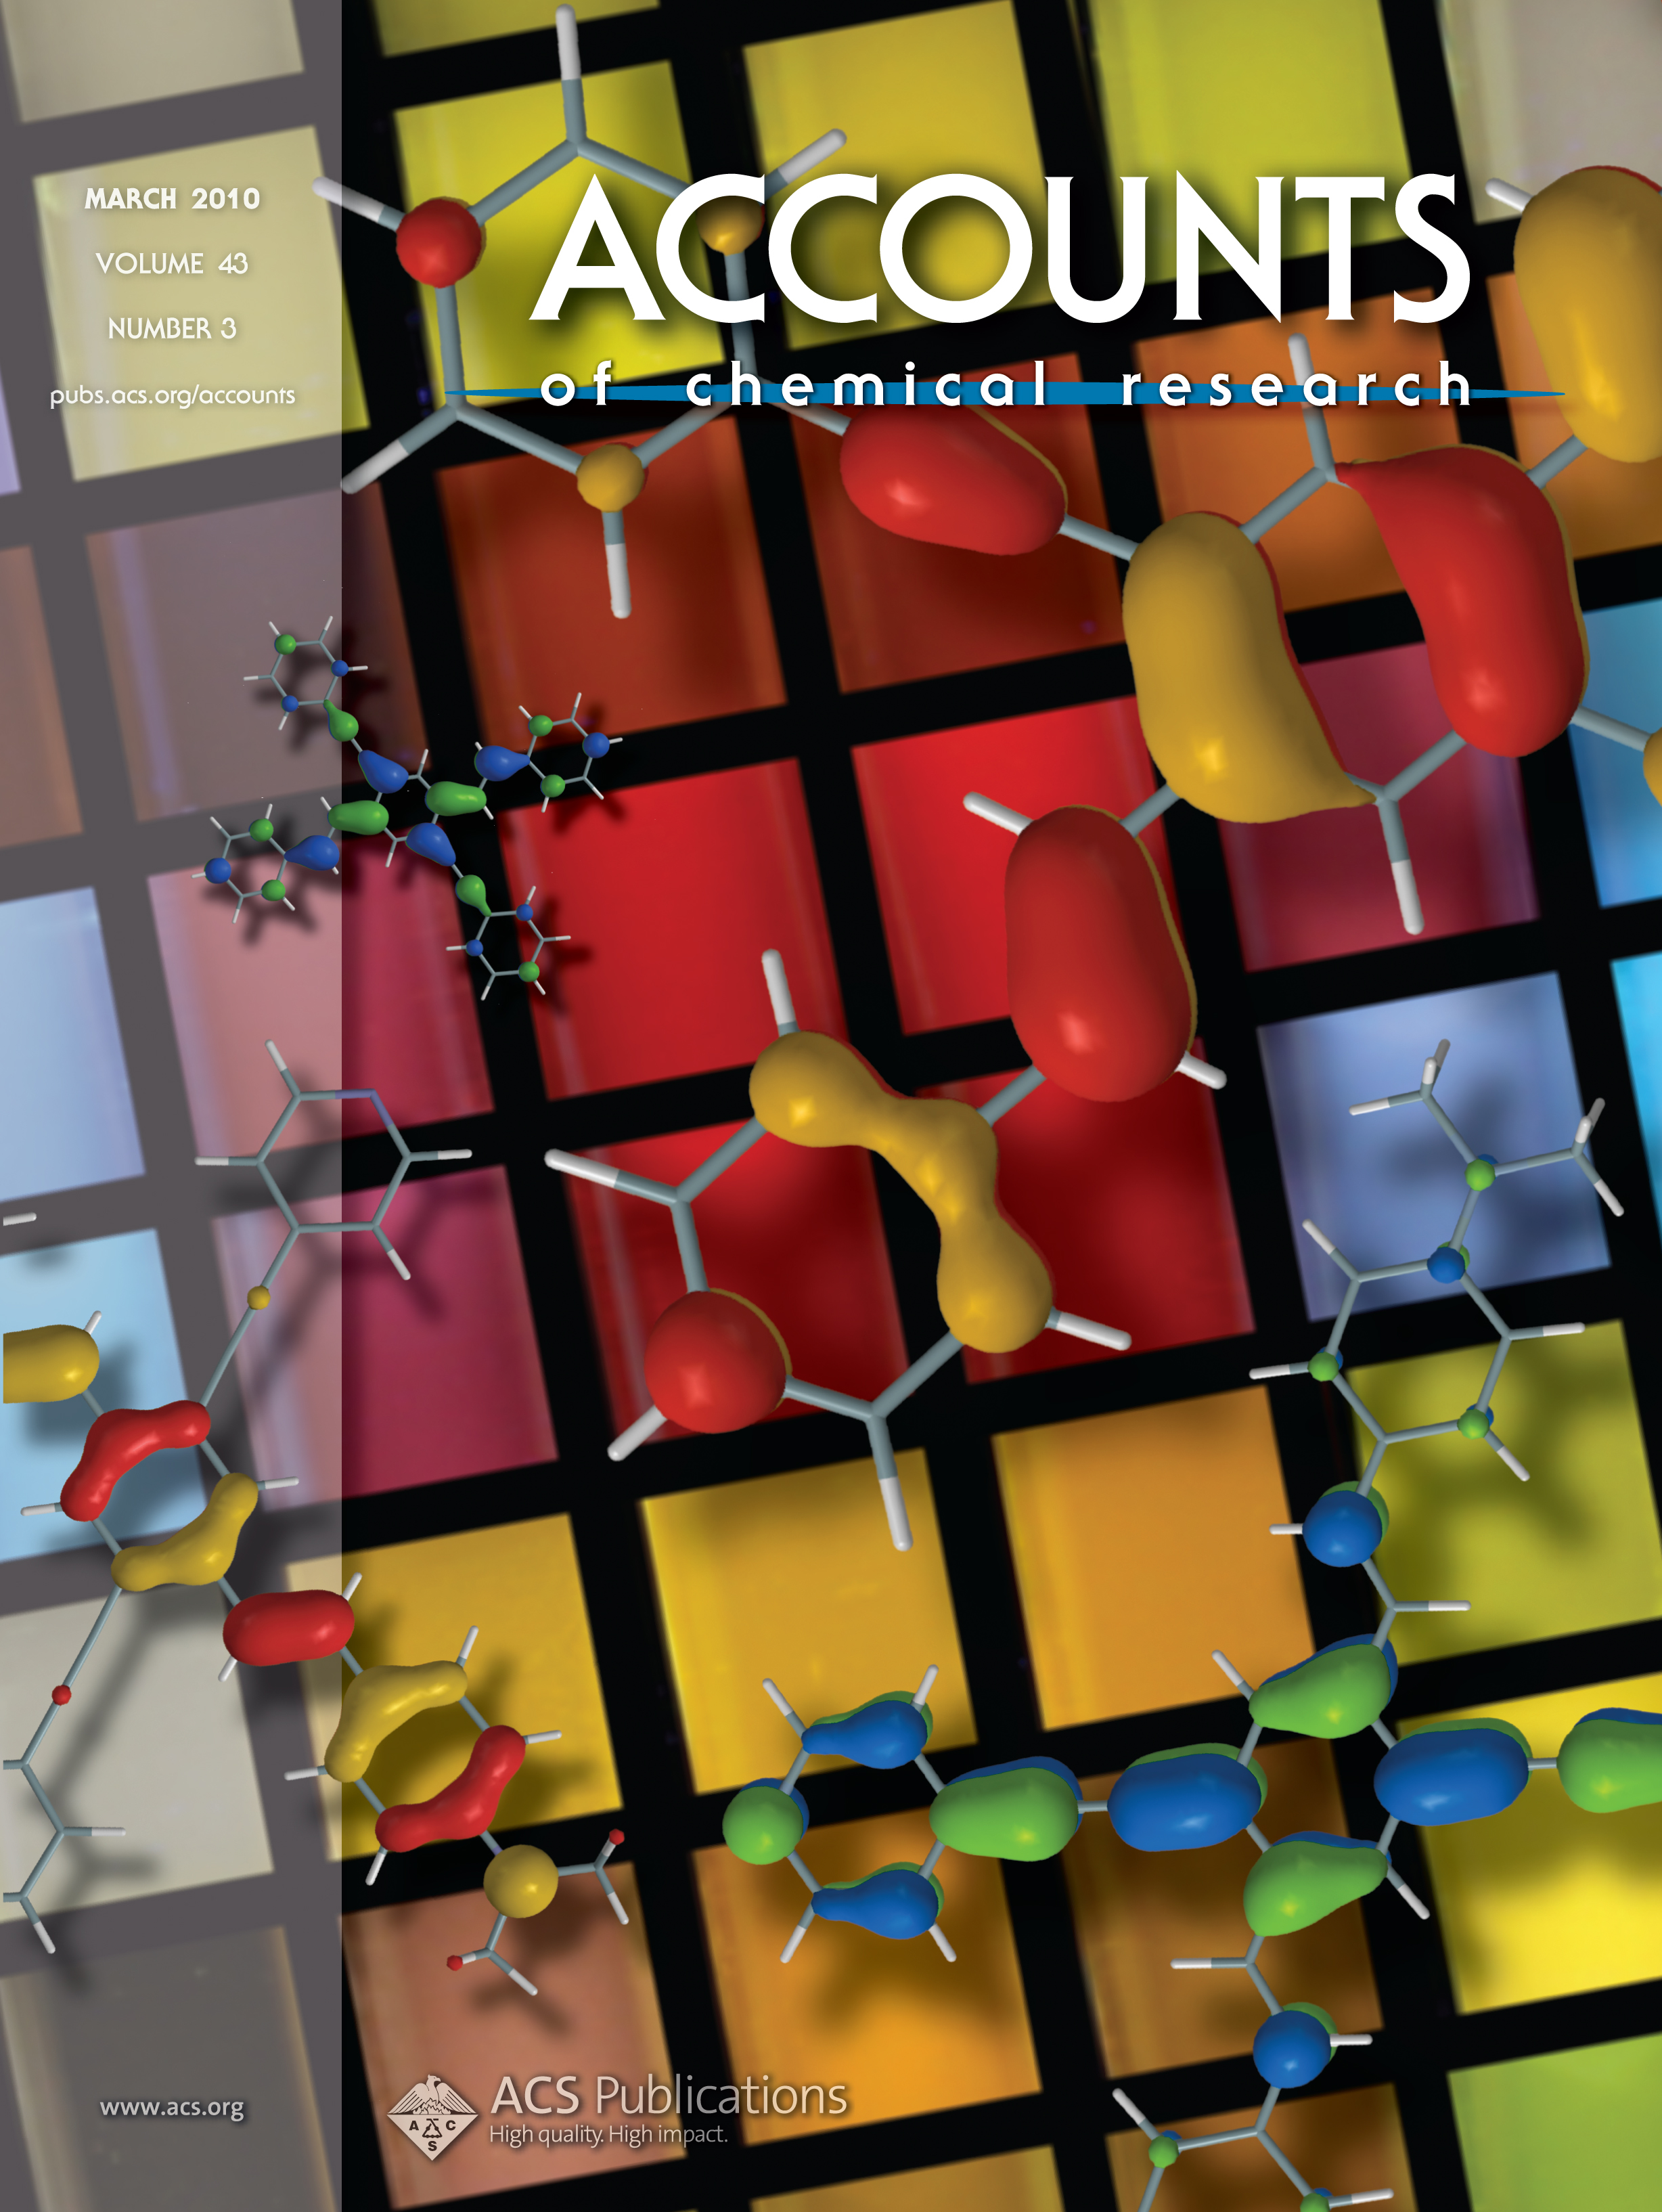 http://pubs.acs.org/subscribe/covers/achre4/achre4_v043i003.jpg?0.47887458180942377